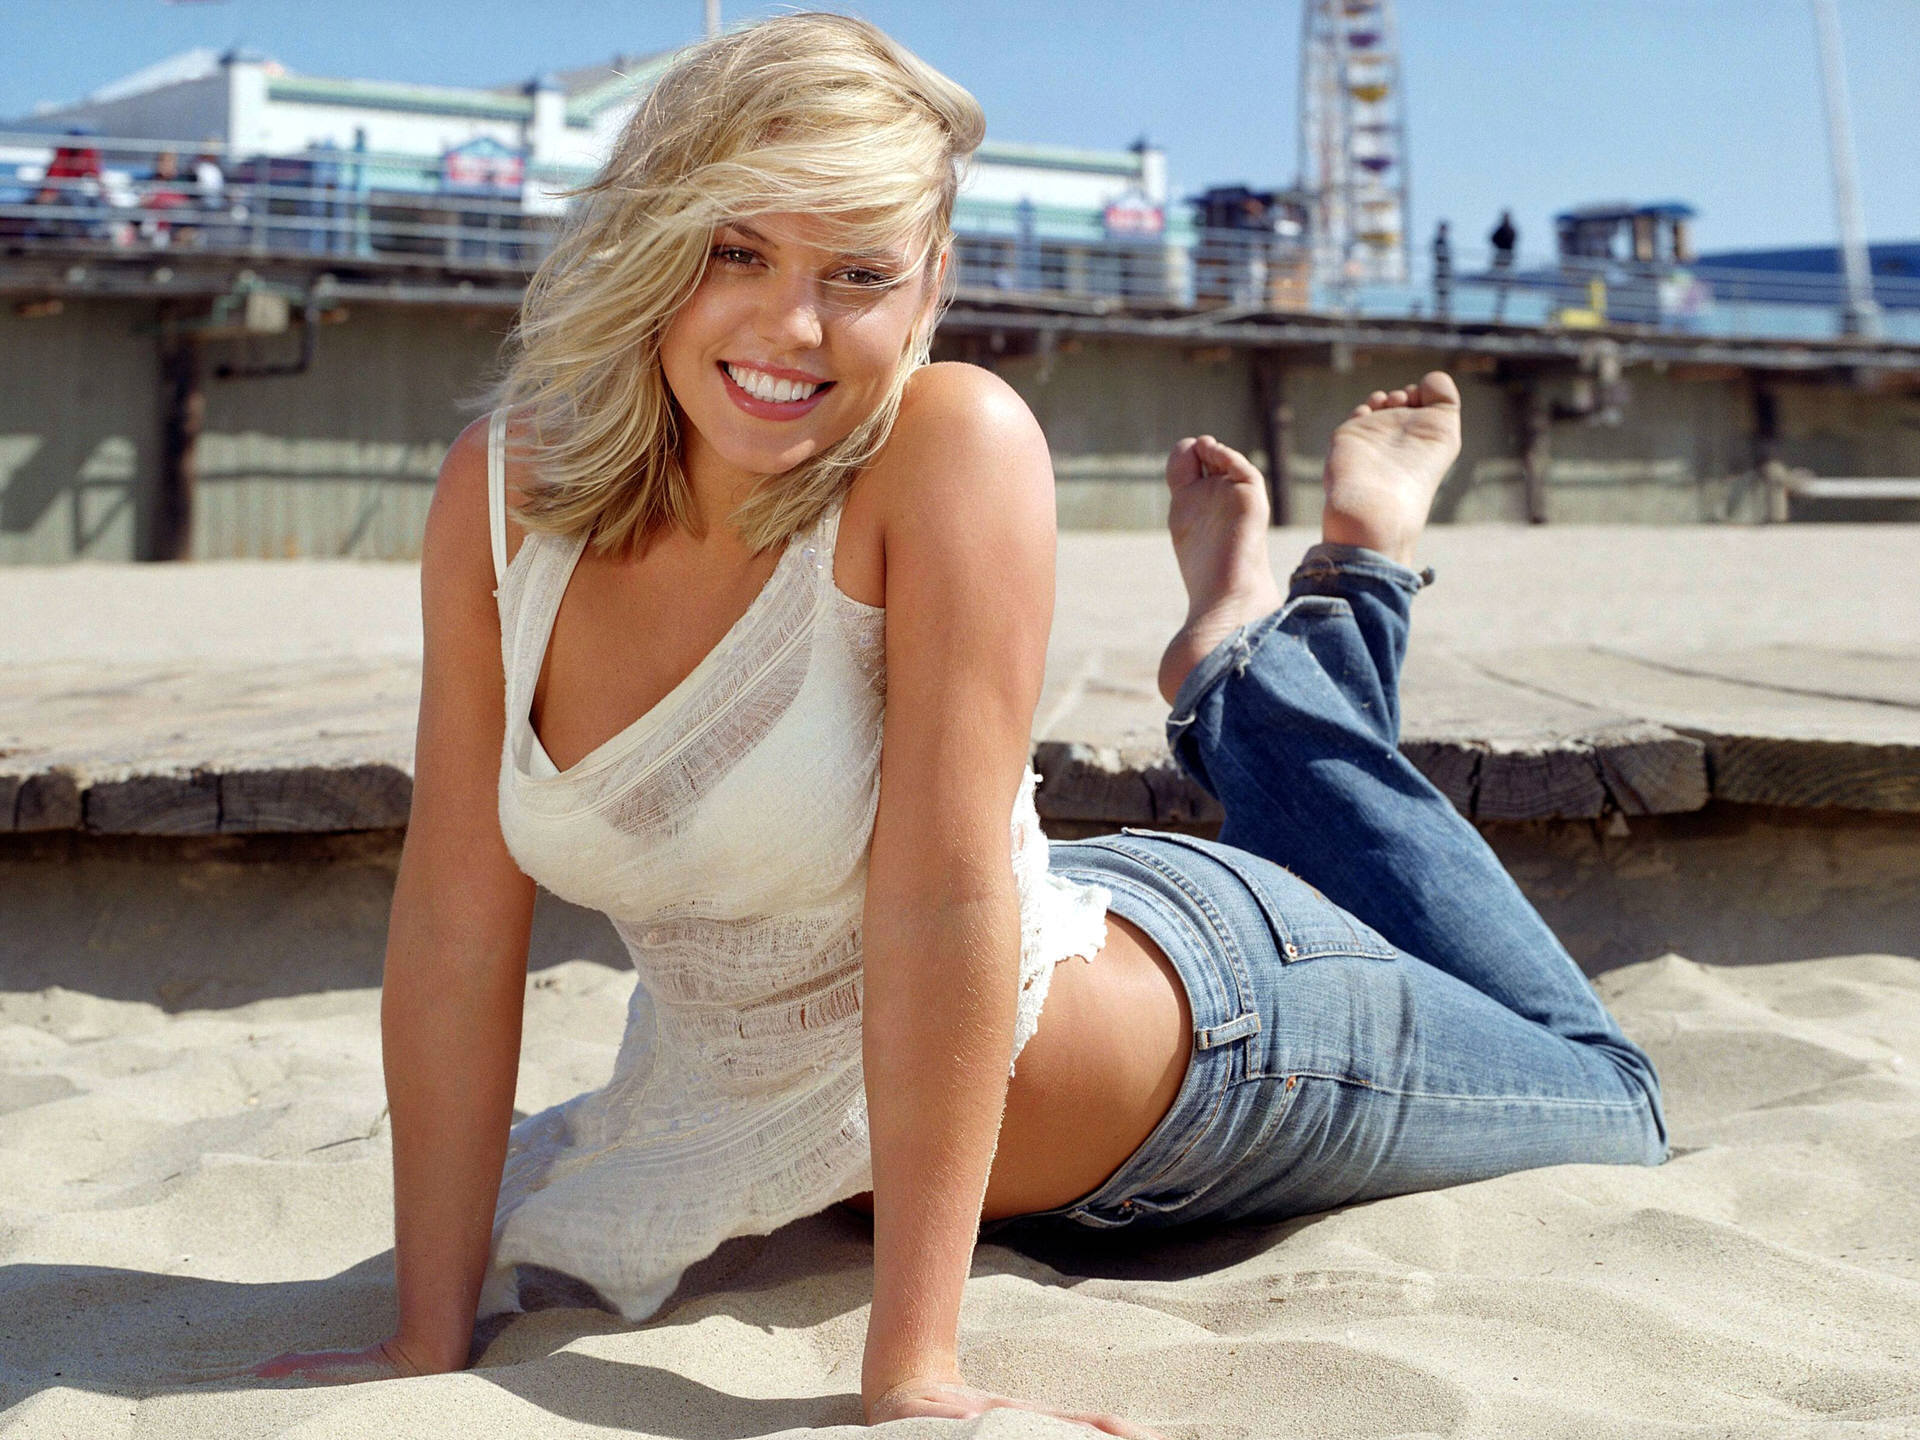 agnes bruckner seductive hot - photo #2